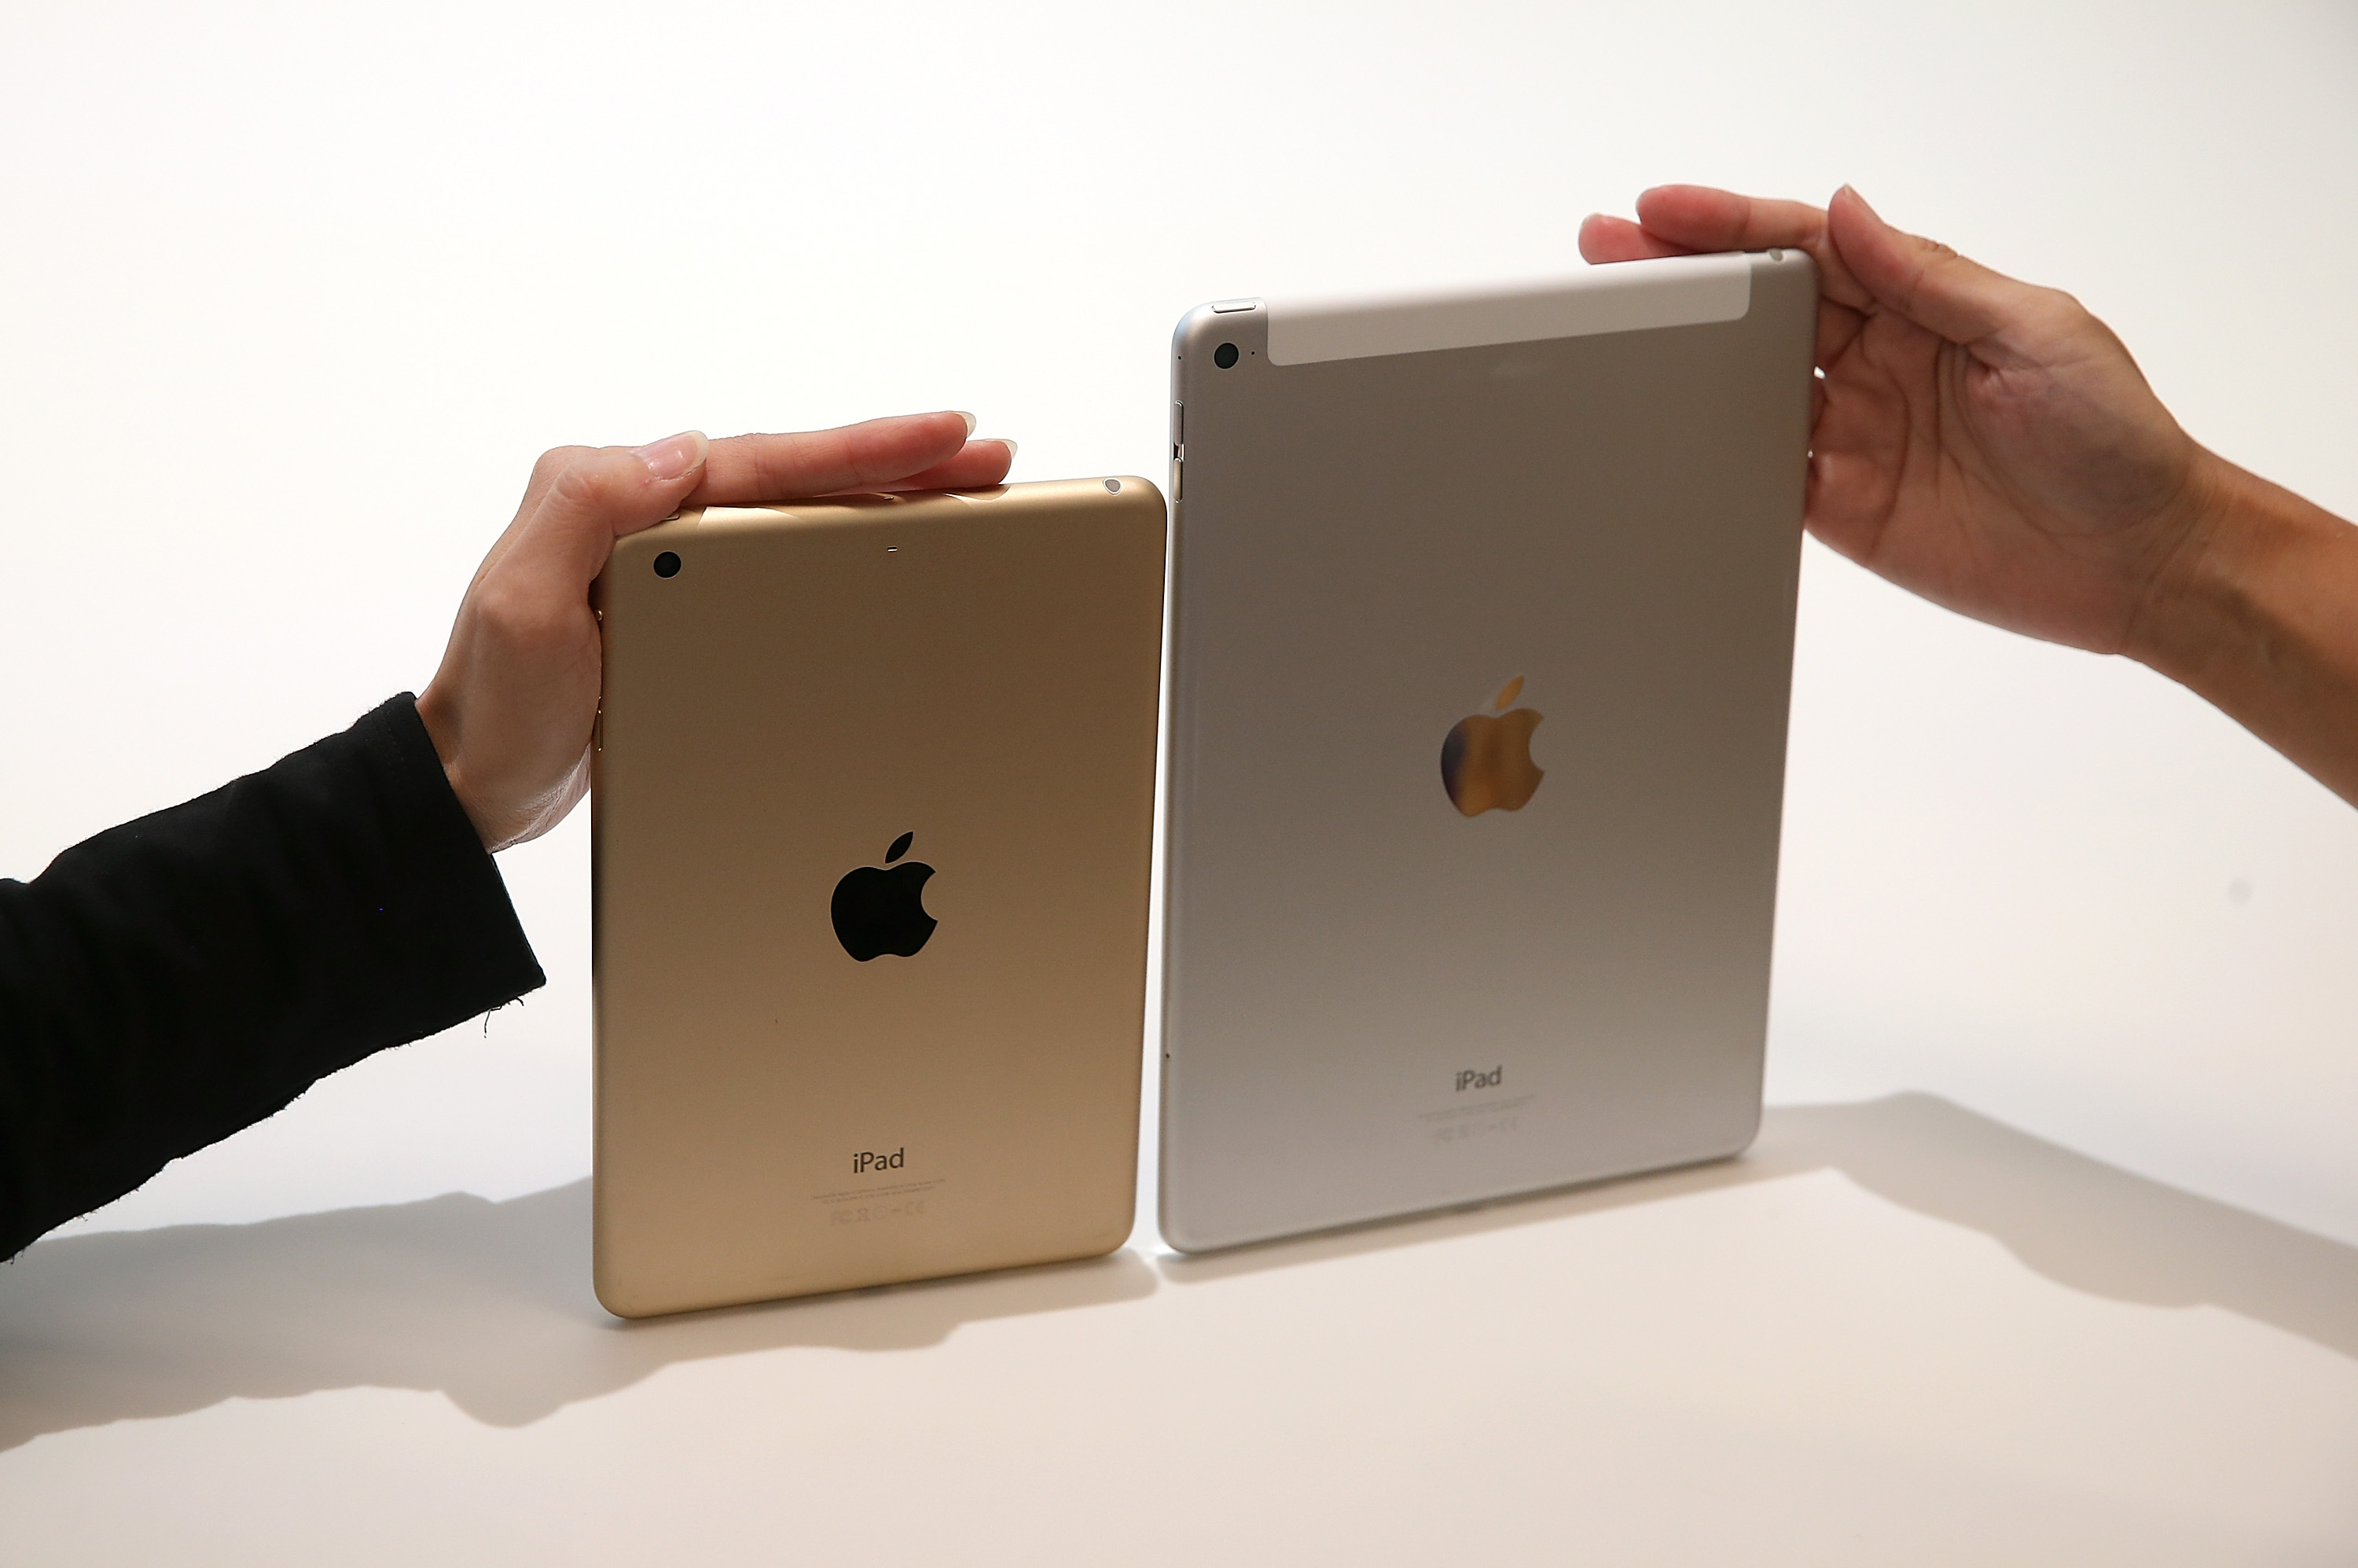 The new iPad Air 2 (R) and iPad Mini 3 are displayed during an Apple special event on October 16, 2014 in Cupertino, California. (Photo by Justin Sullivan/Getty Images)